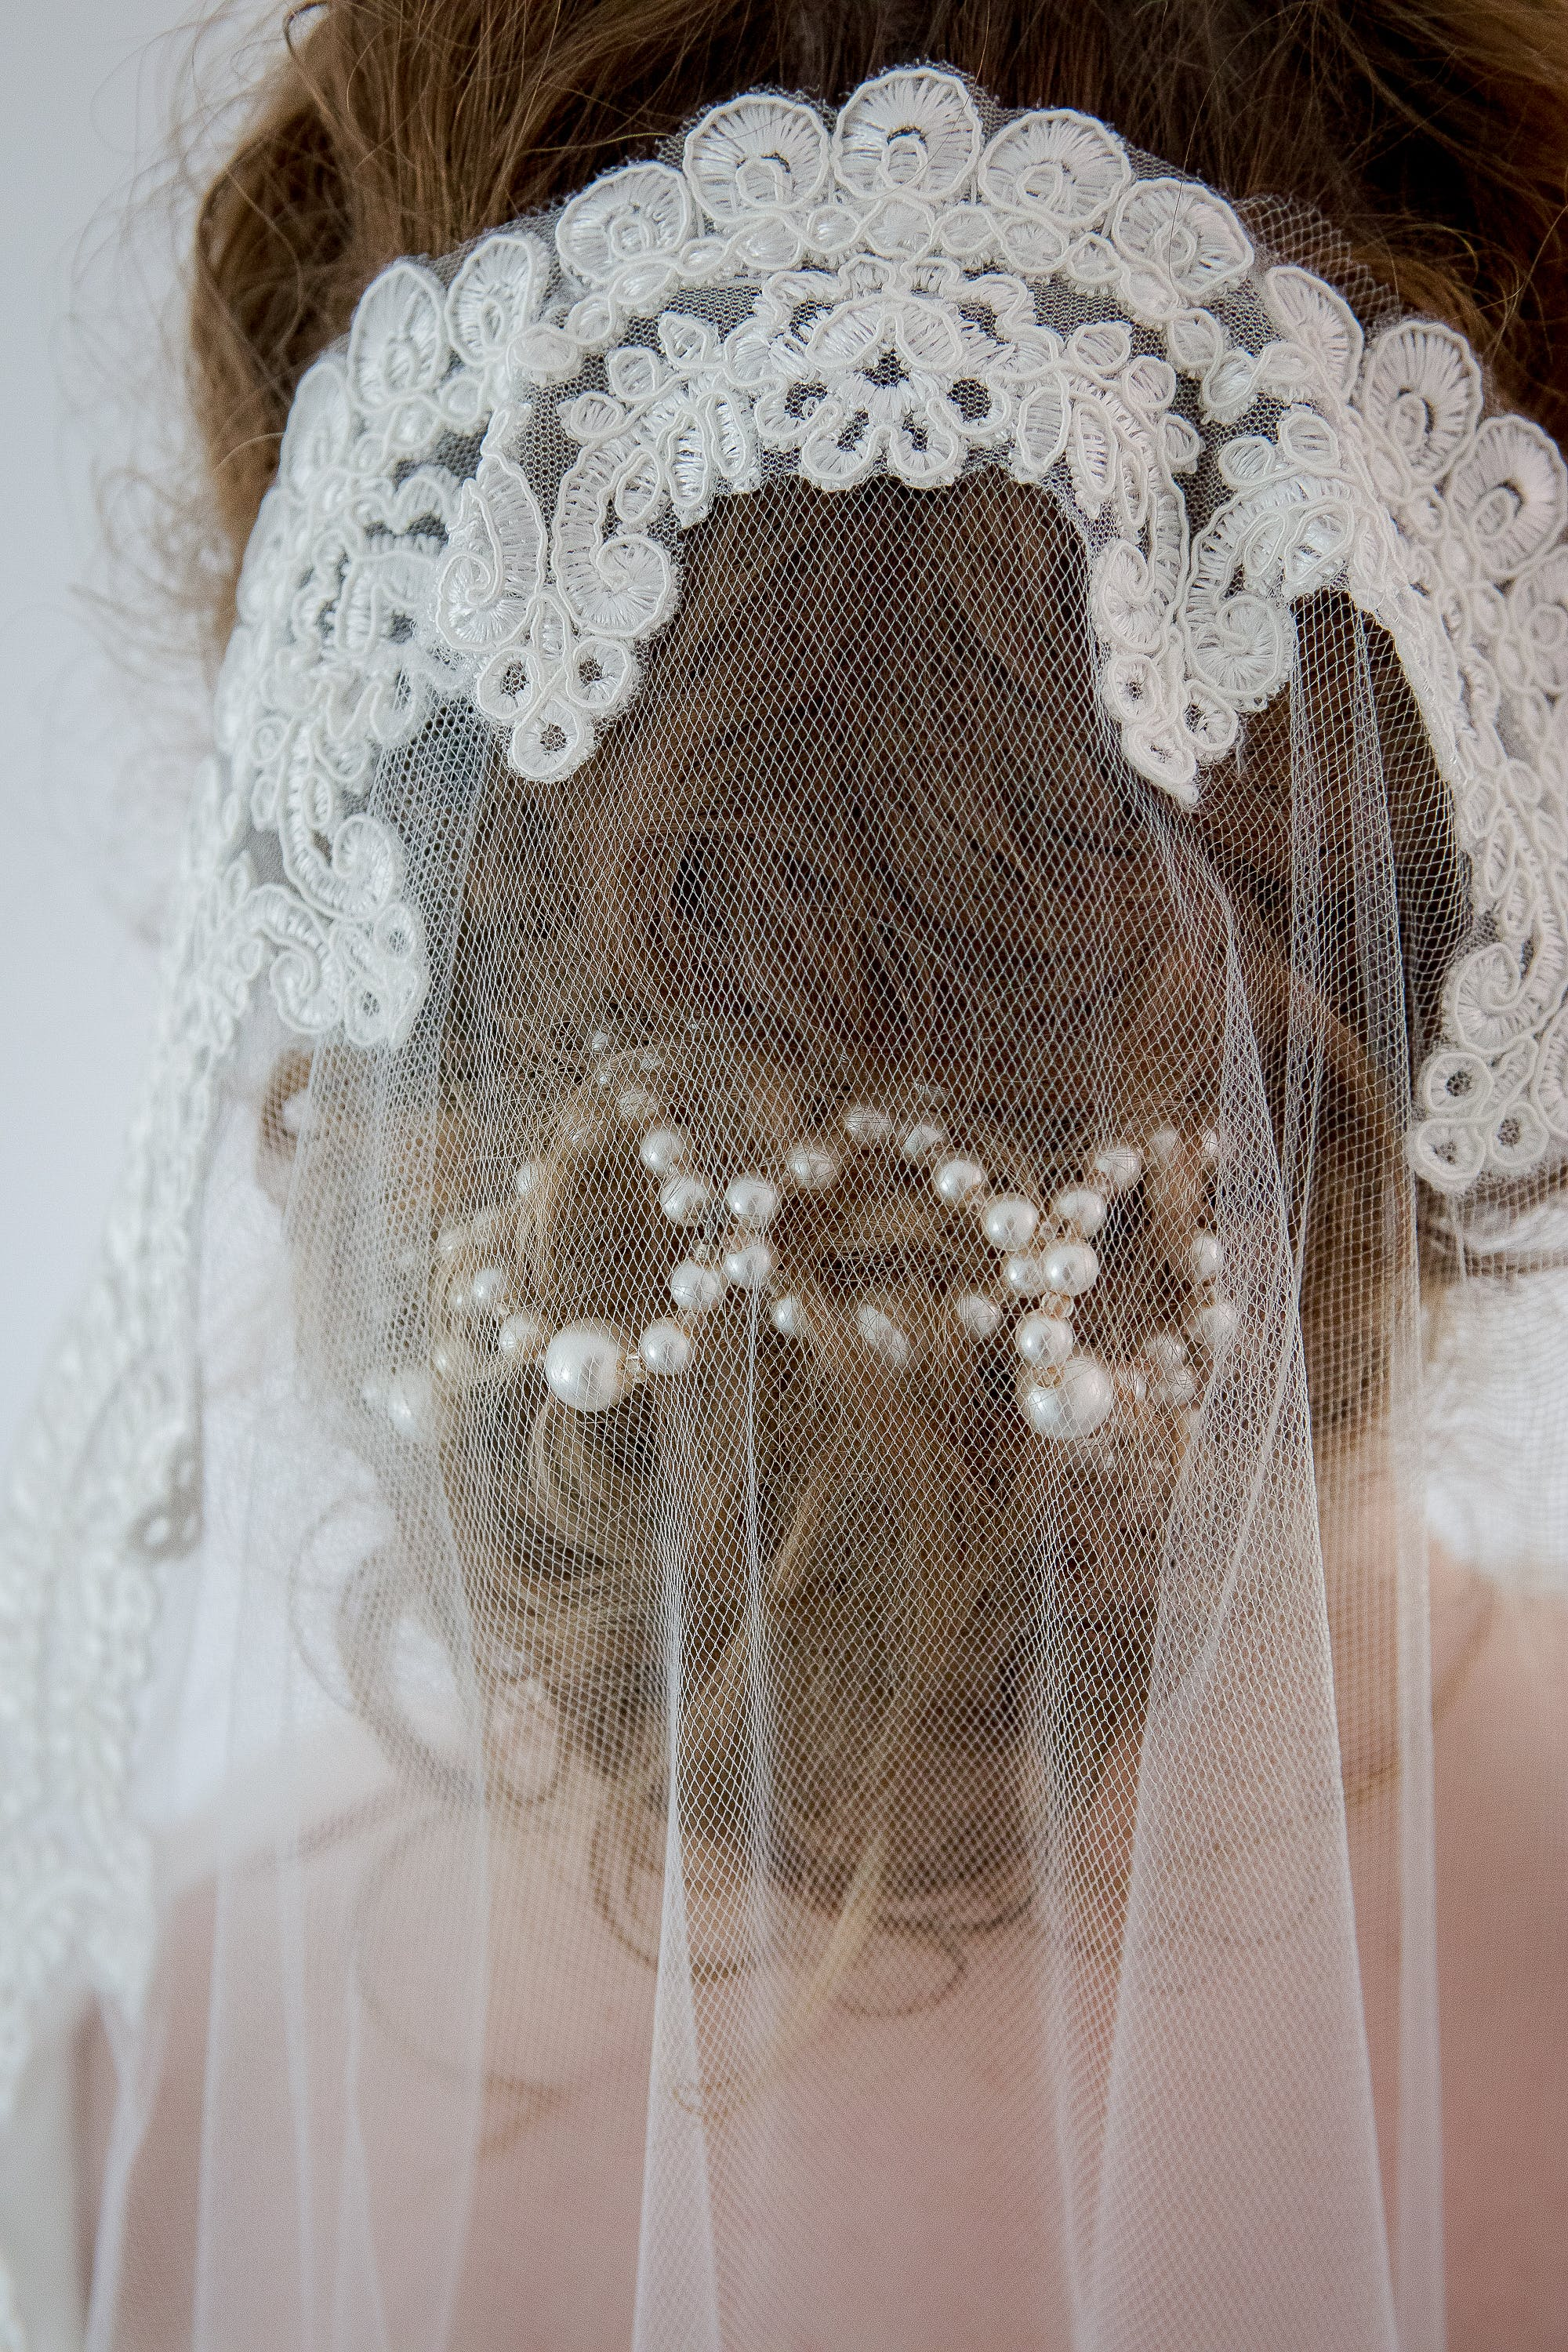 Bride Wearing White Floral Veil